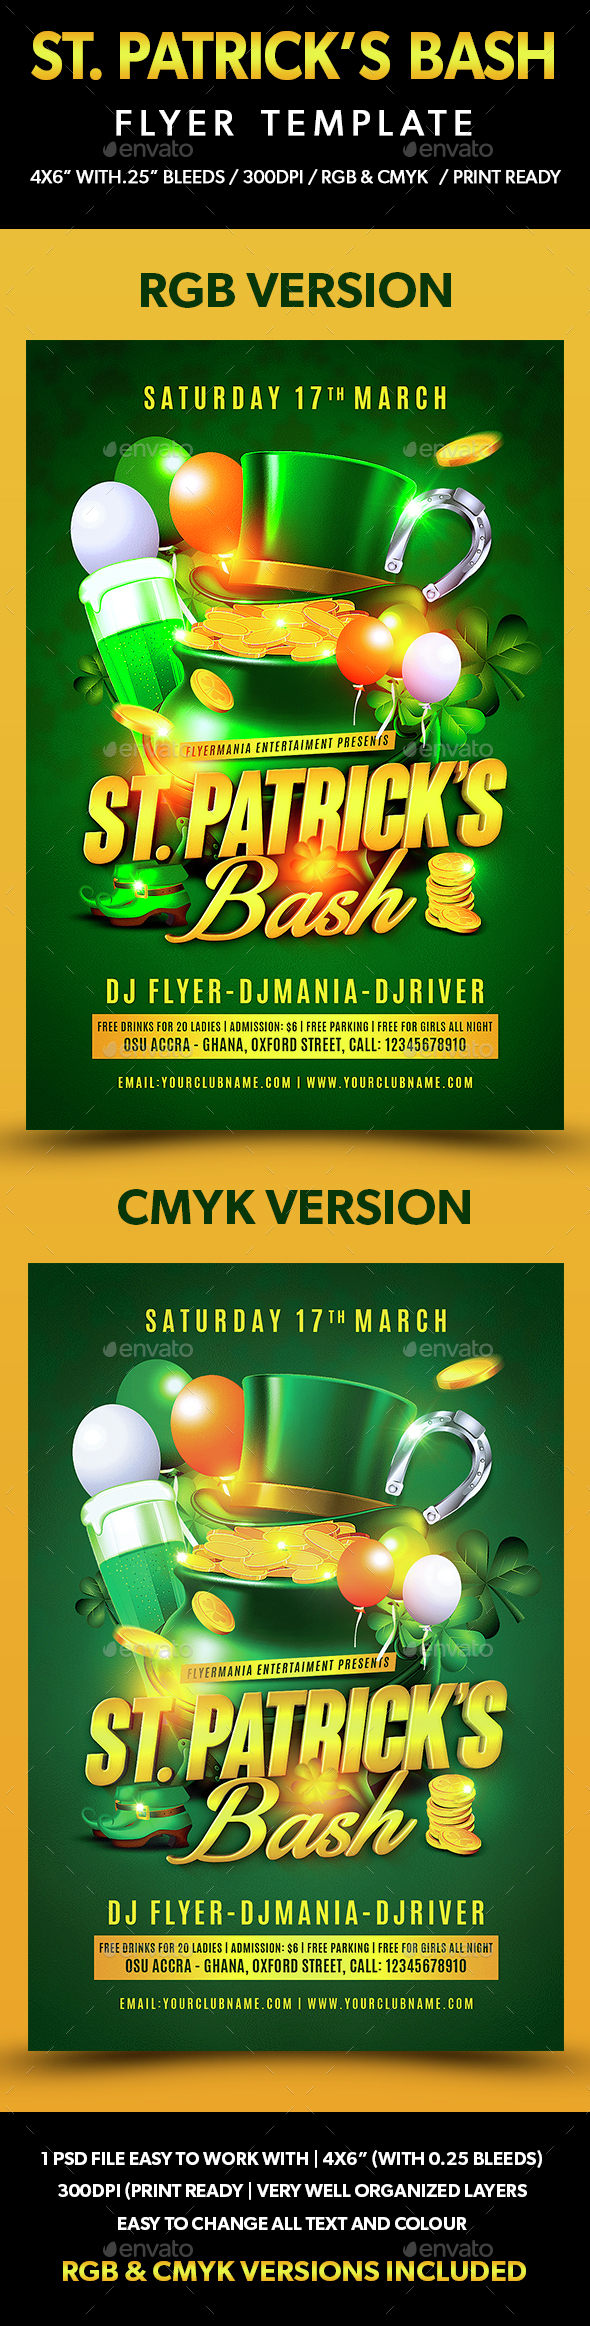 St. Patrick's Bash Flyer Template - Flyers Print Templates